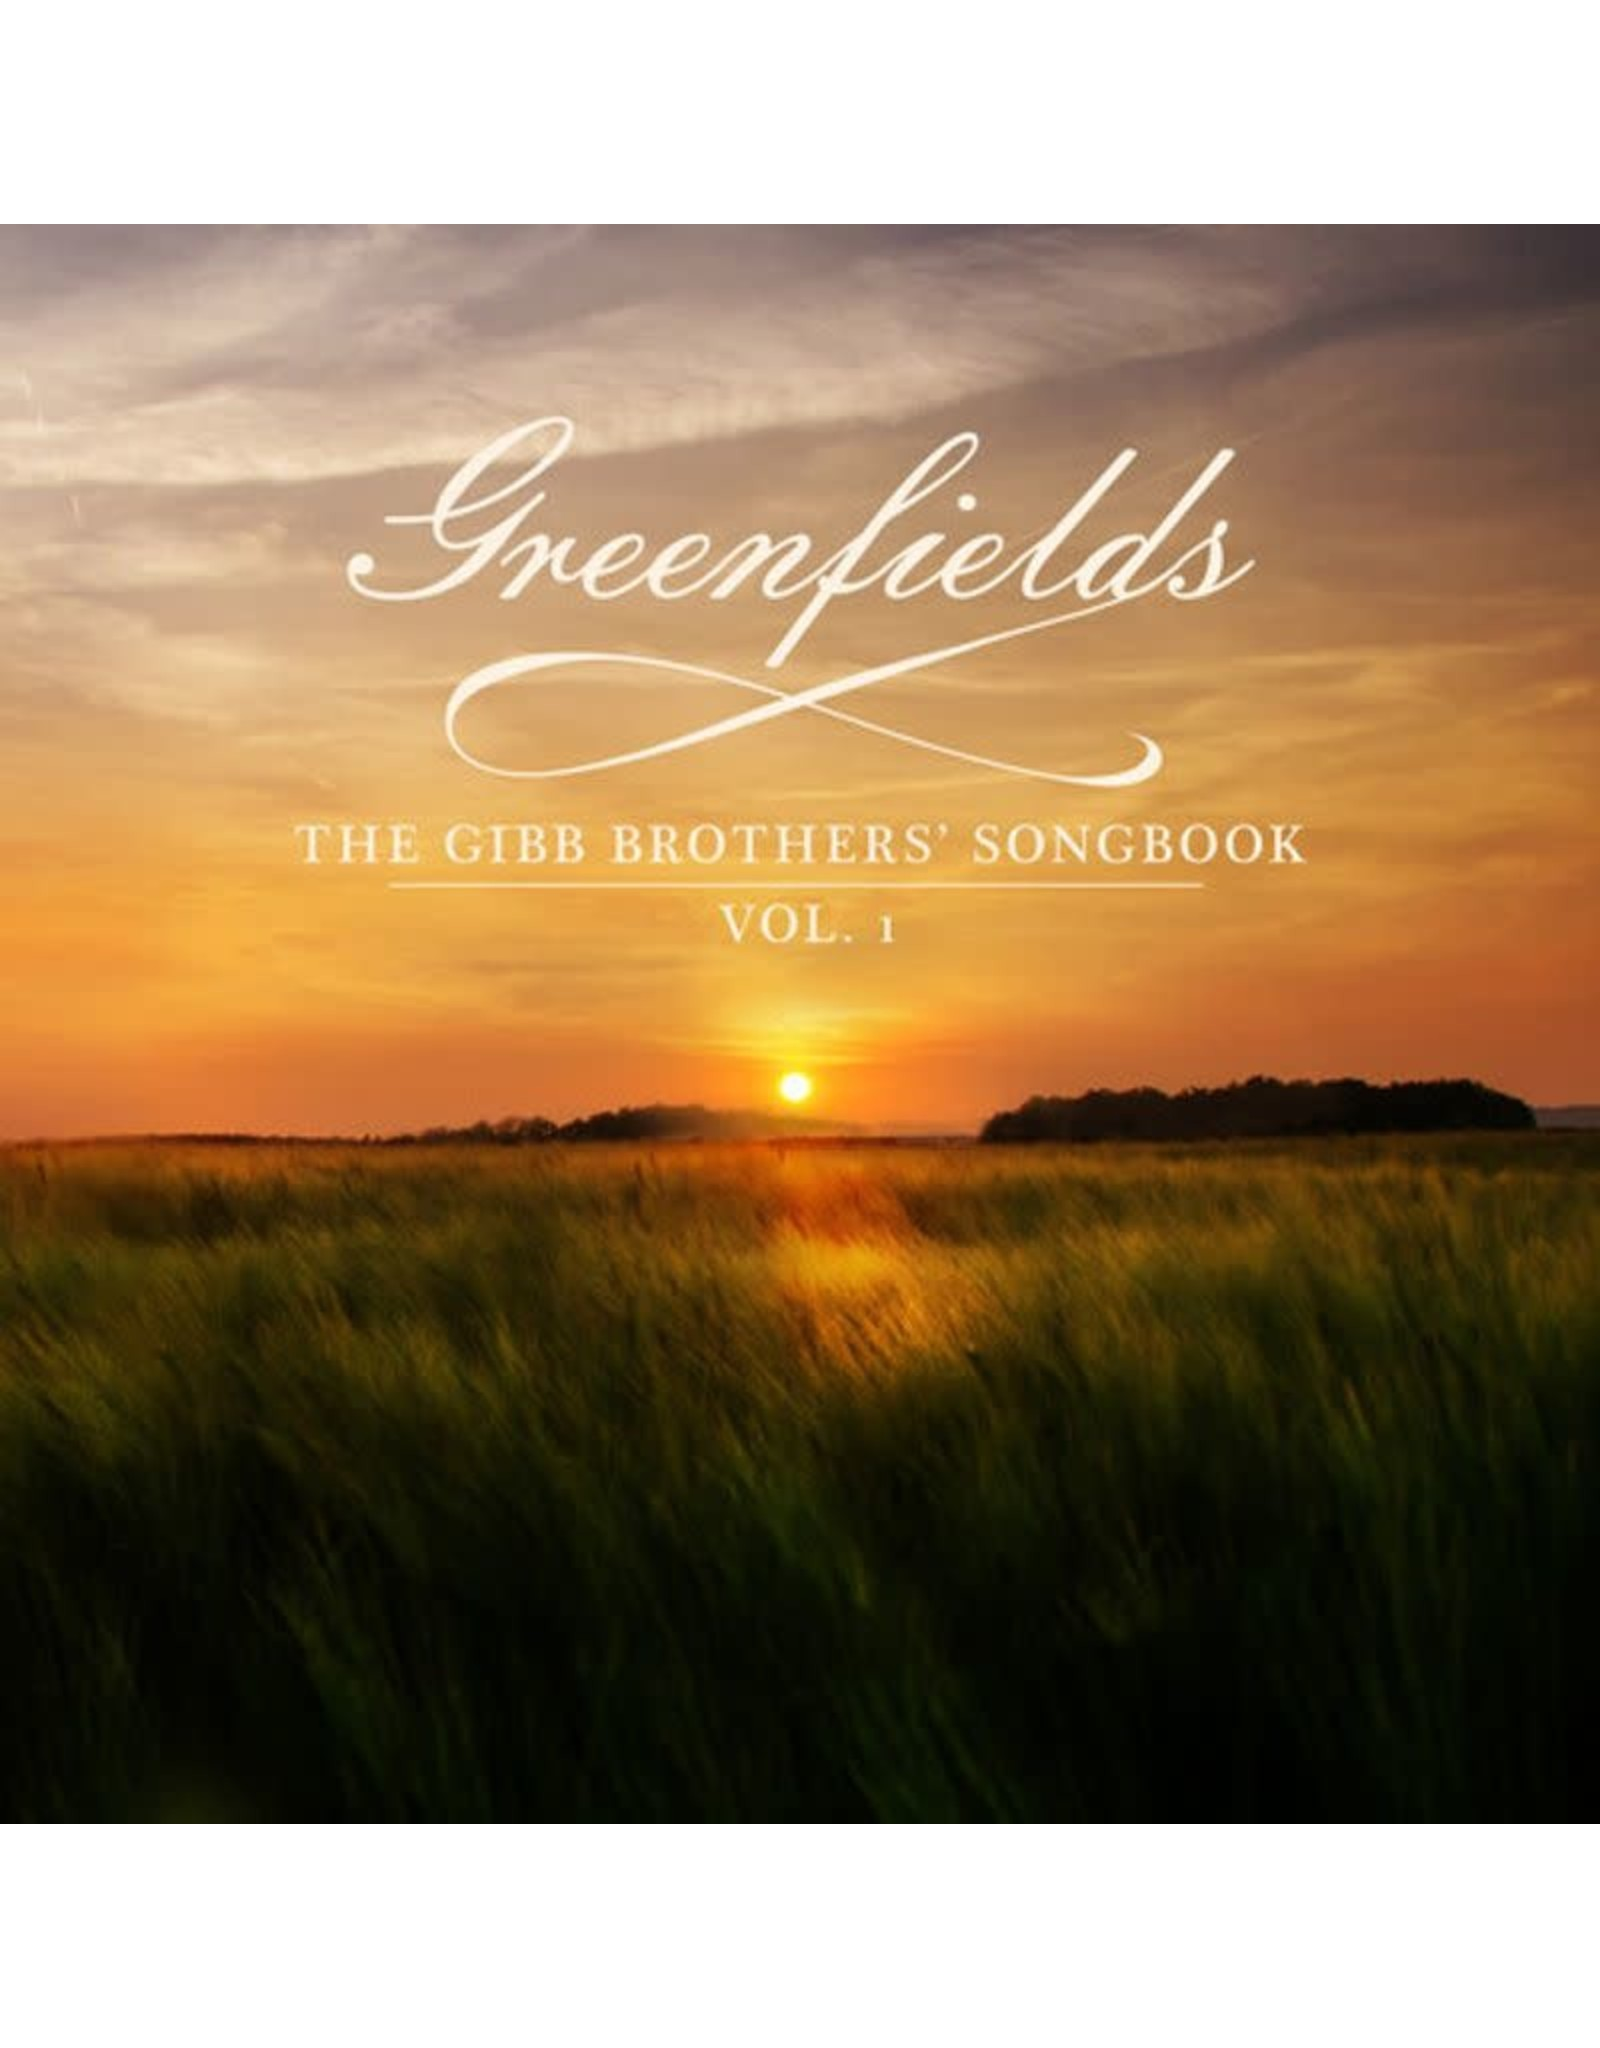 Gibb, Barry & Friends - Greenfields: The Gibb Brothers' Songbook Vol. 1 CD